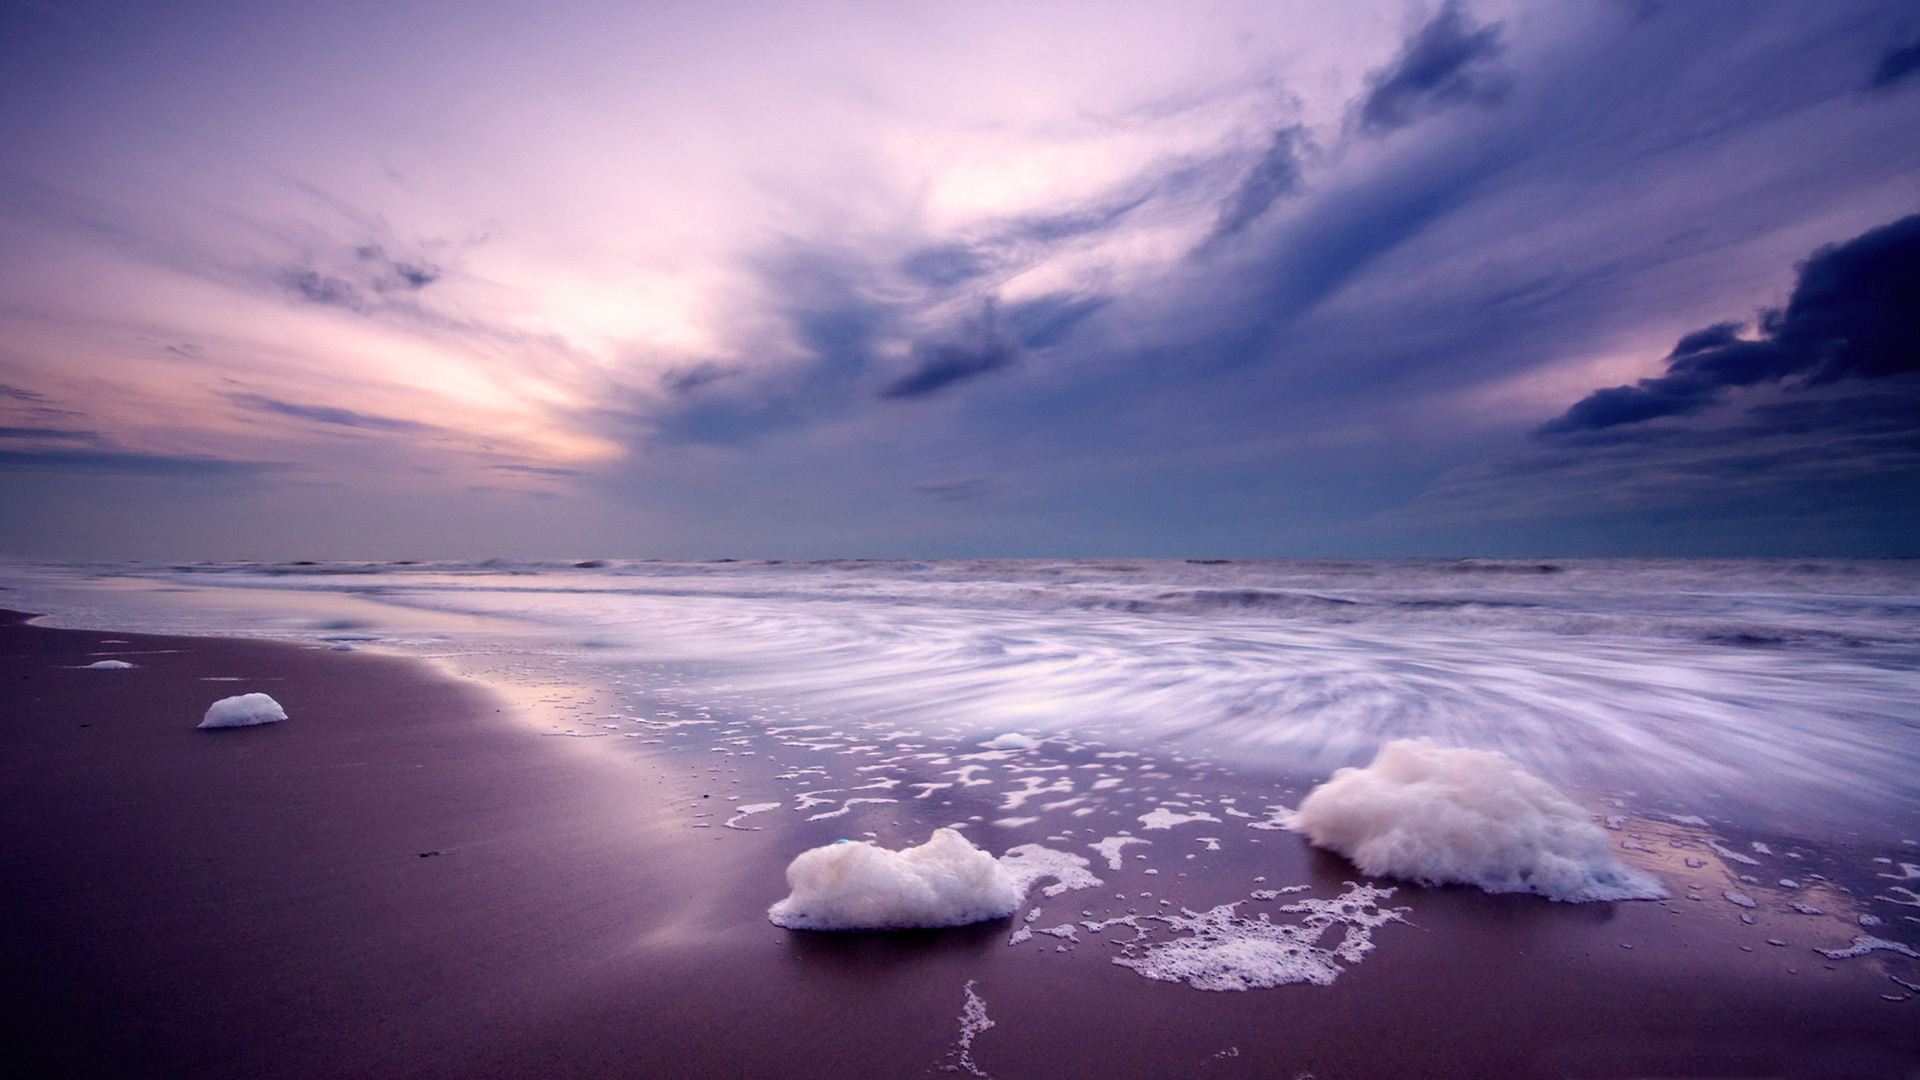 http://pulson.ru/wp-content/uploads/2012/01/purple_beach_landscape-wallpaper-1920x1080.jpg